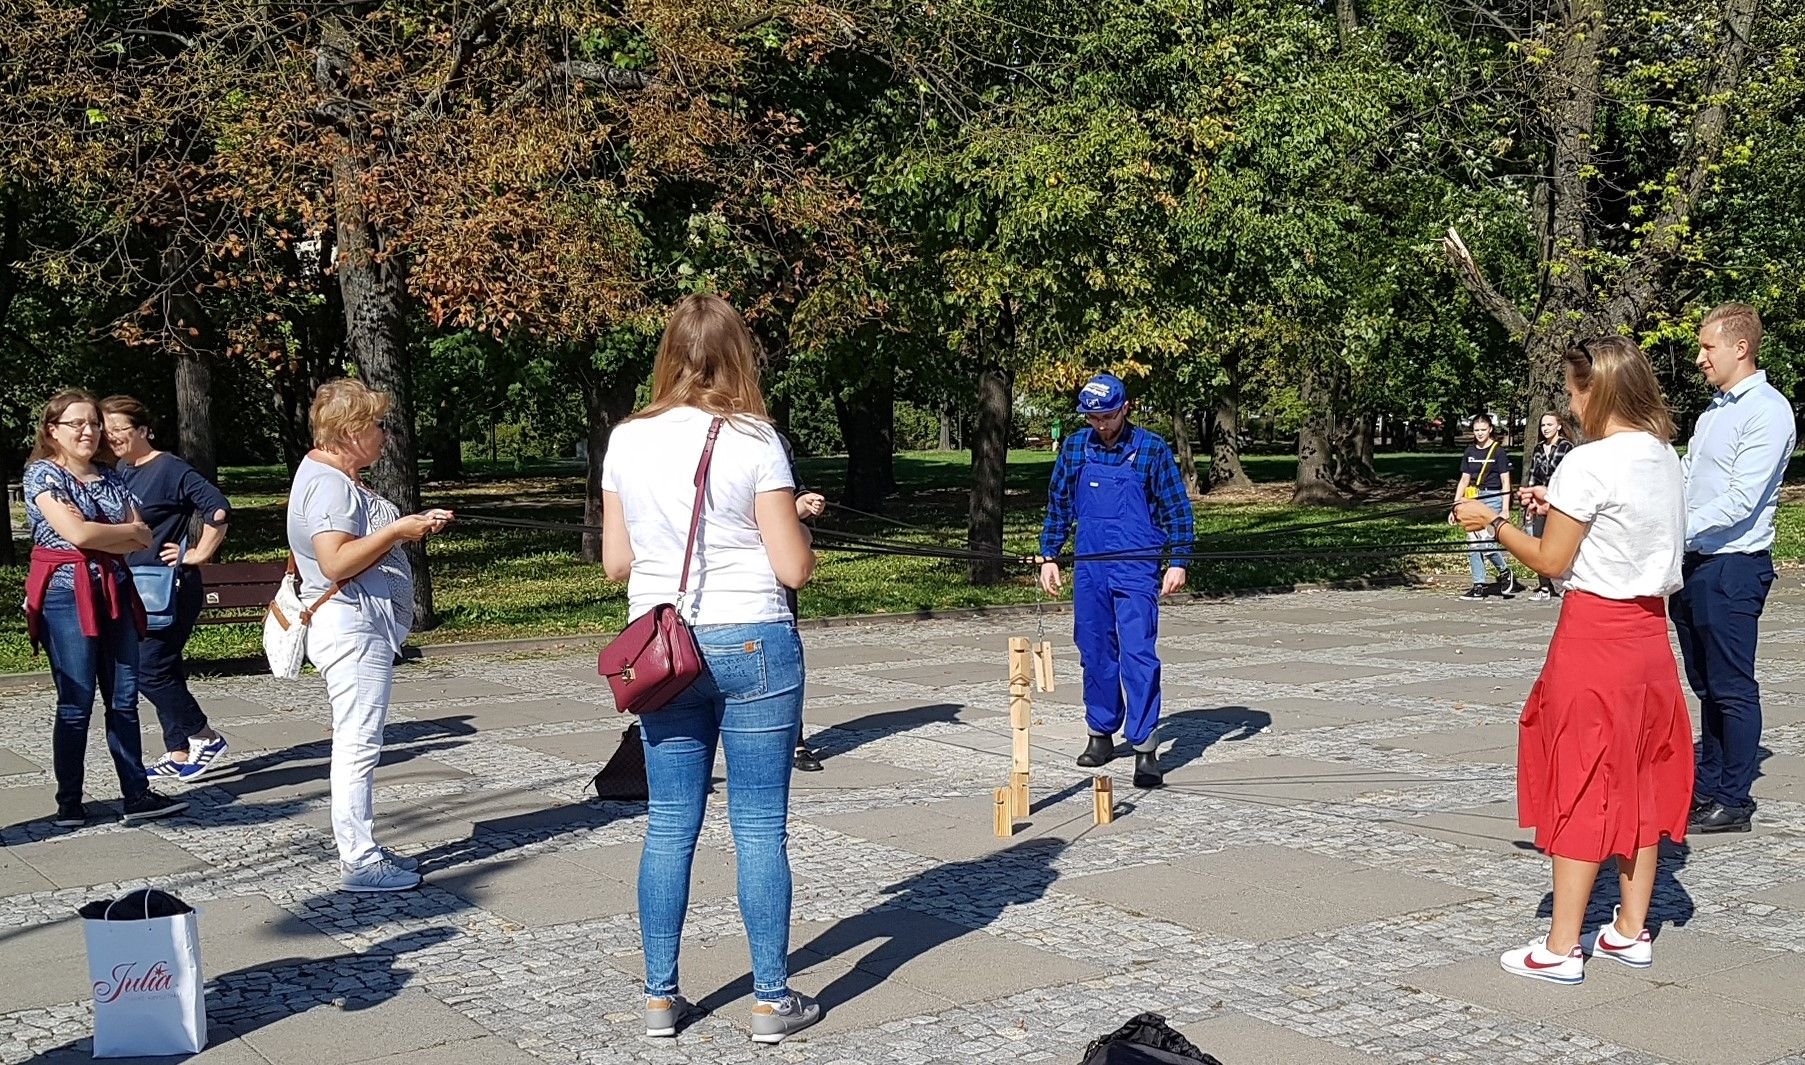 Task during city game in Warsaw